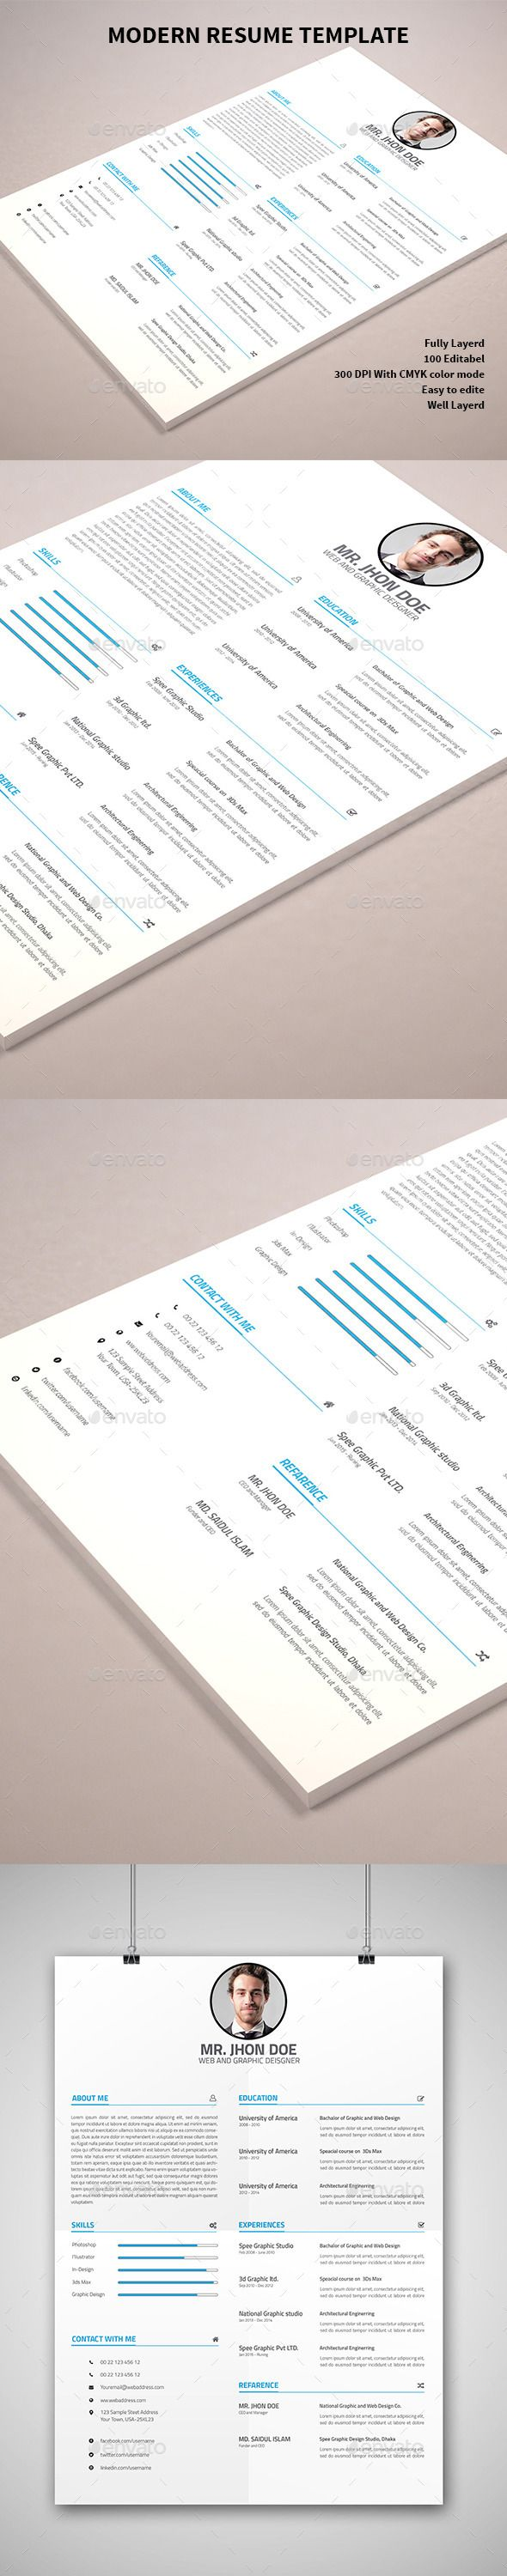 9 Best Resume CV Gallery Images On Pinterest